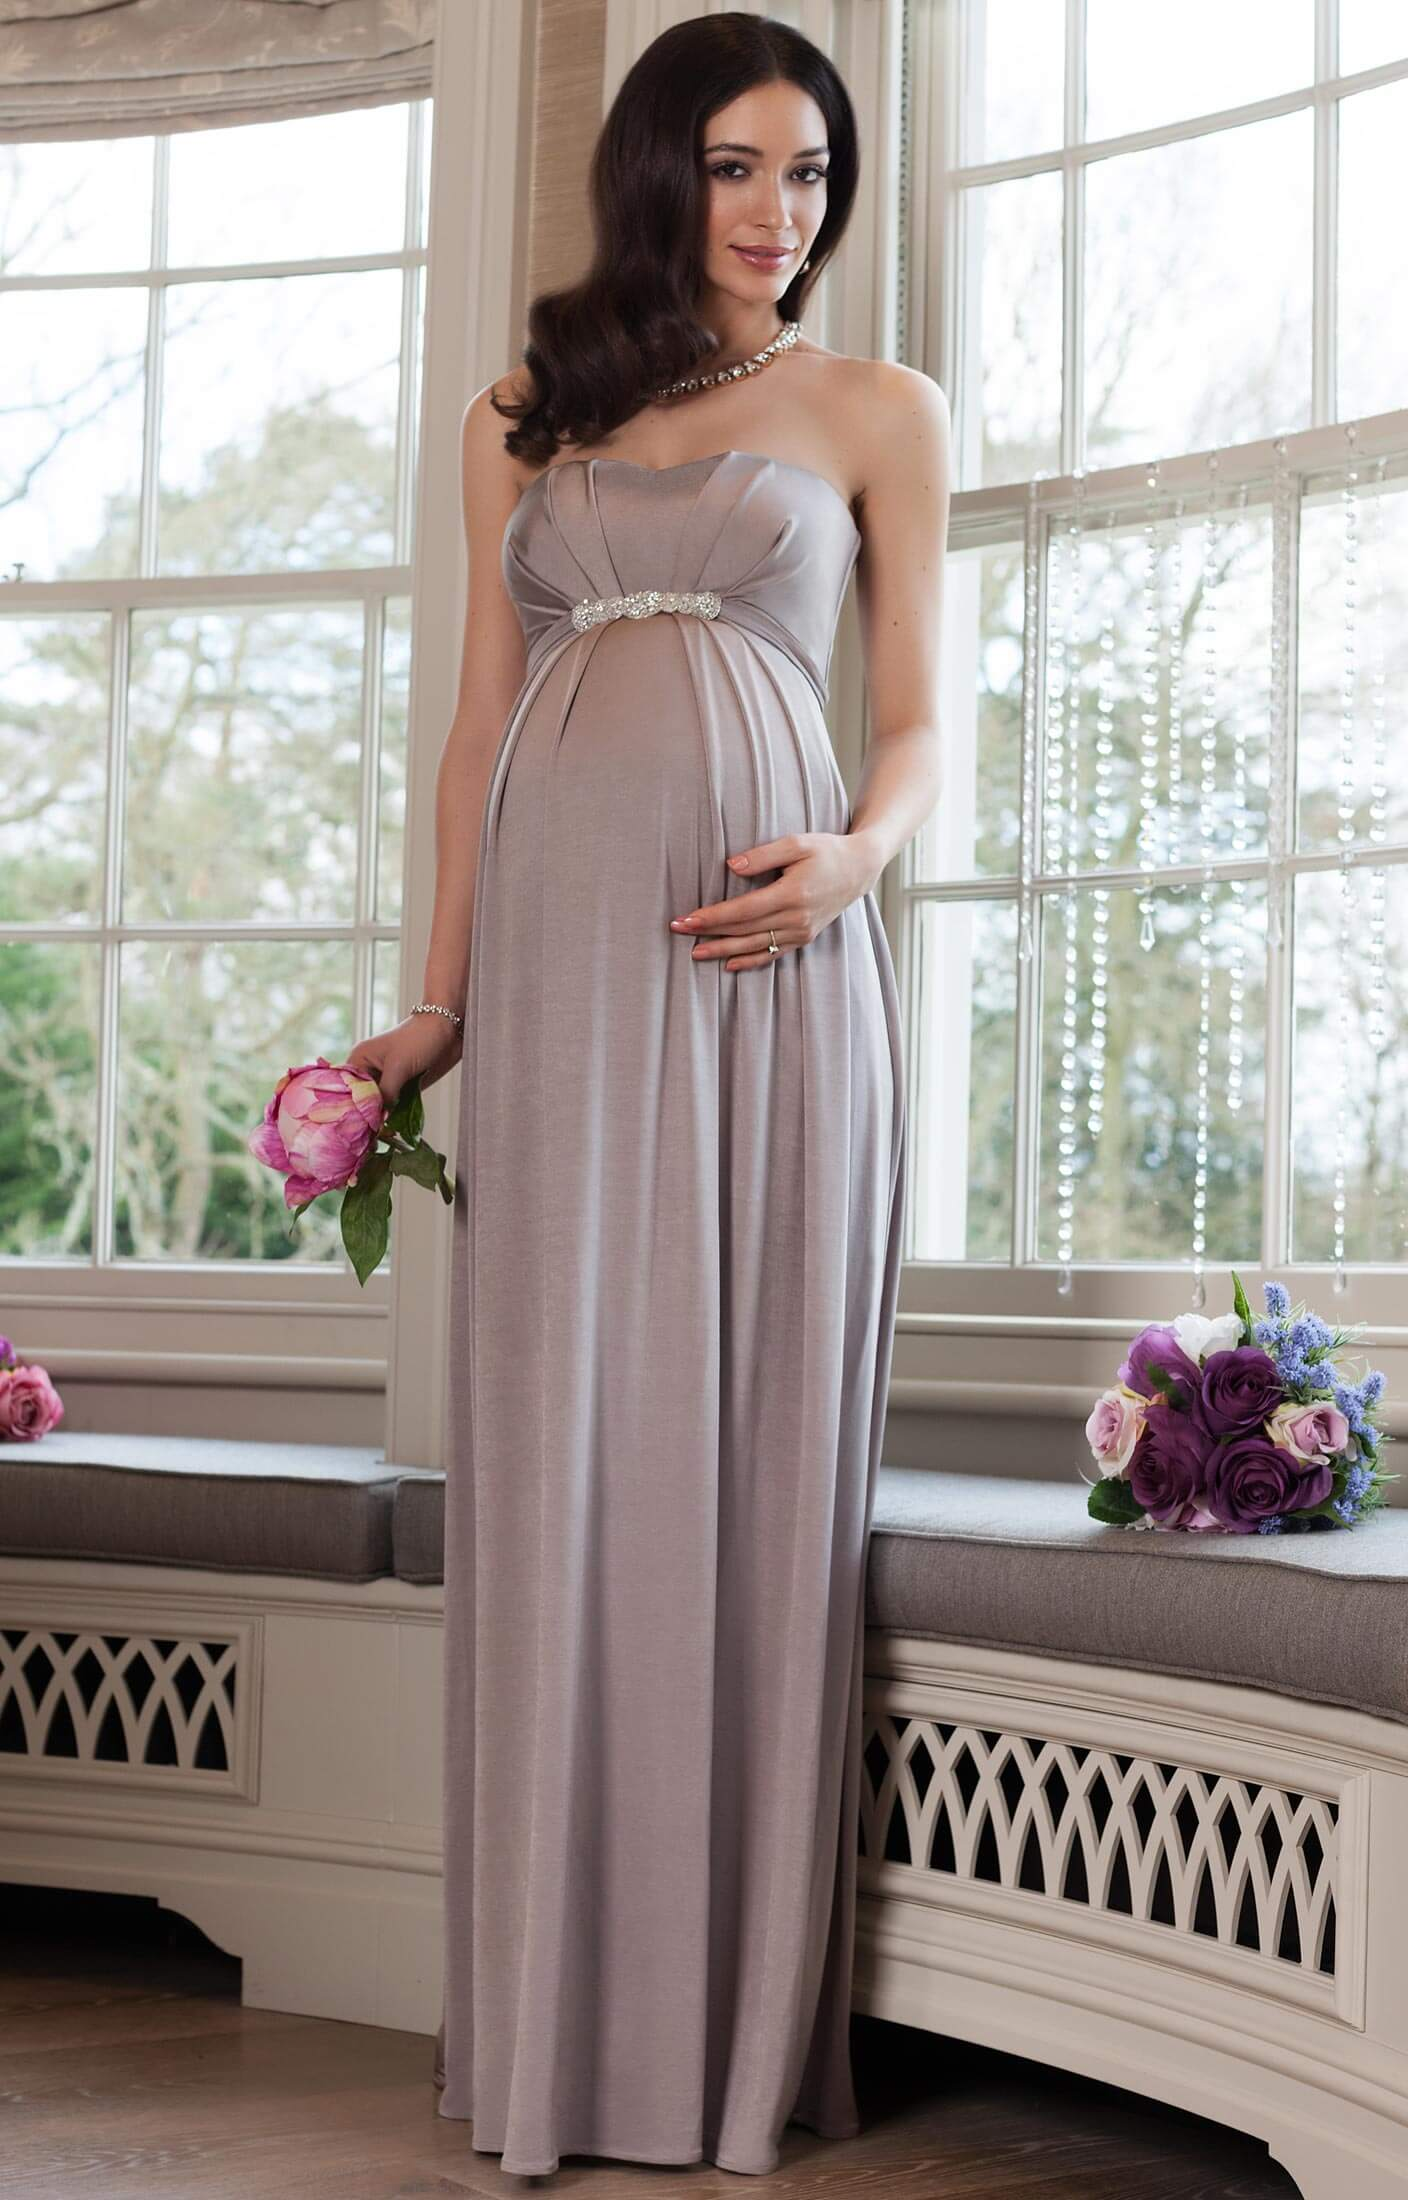 Annabella maternity gown cappuccino - Maternity Wedding Dresses ...